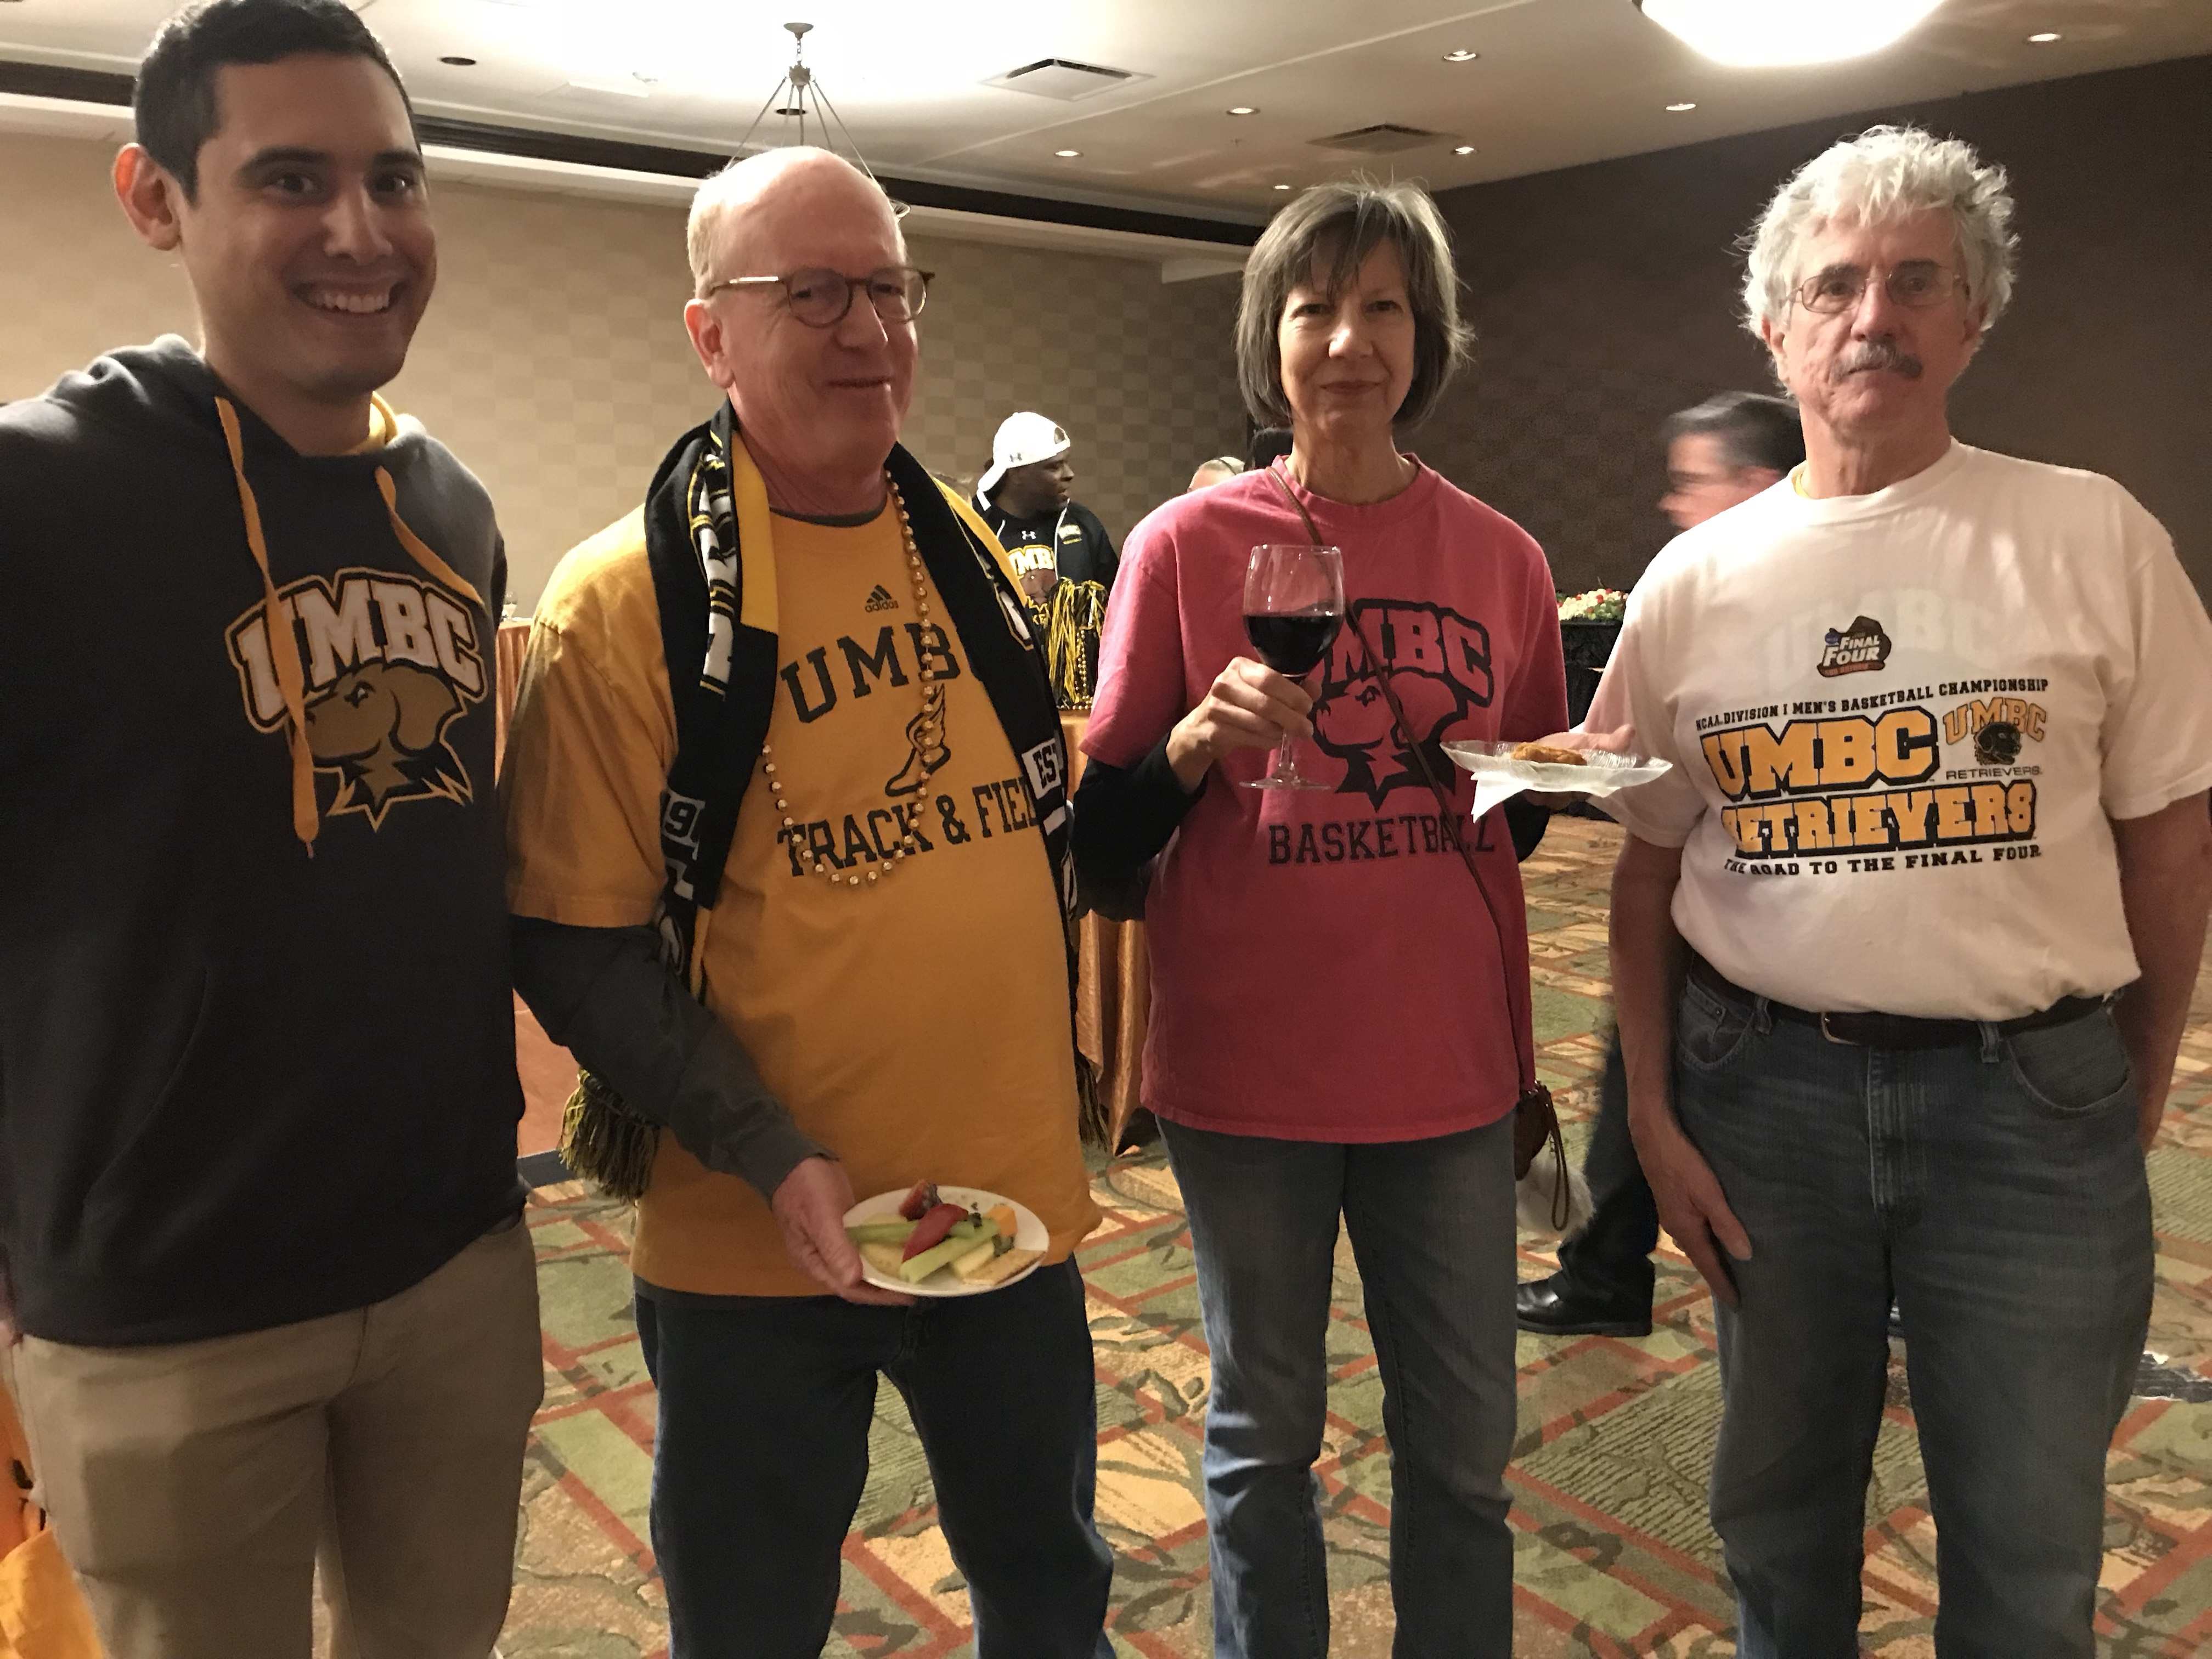 Four people with UMBC shirts on pose for picture